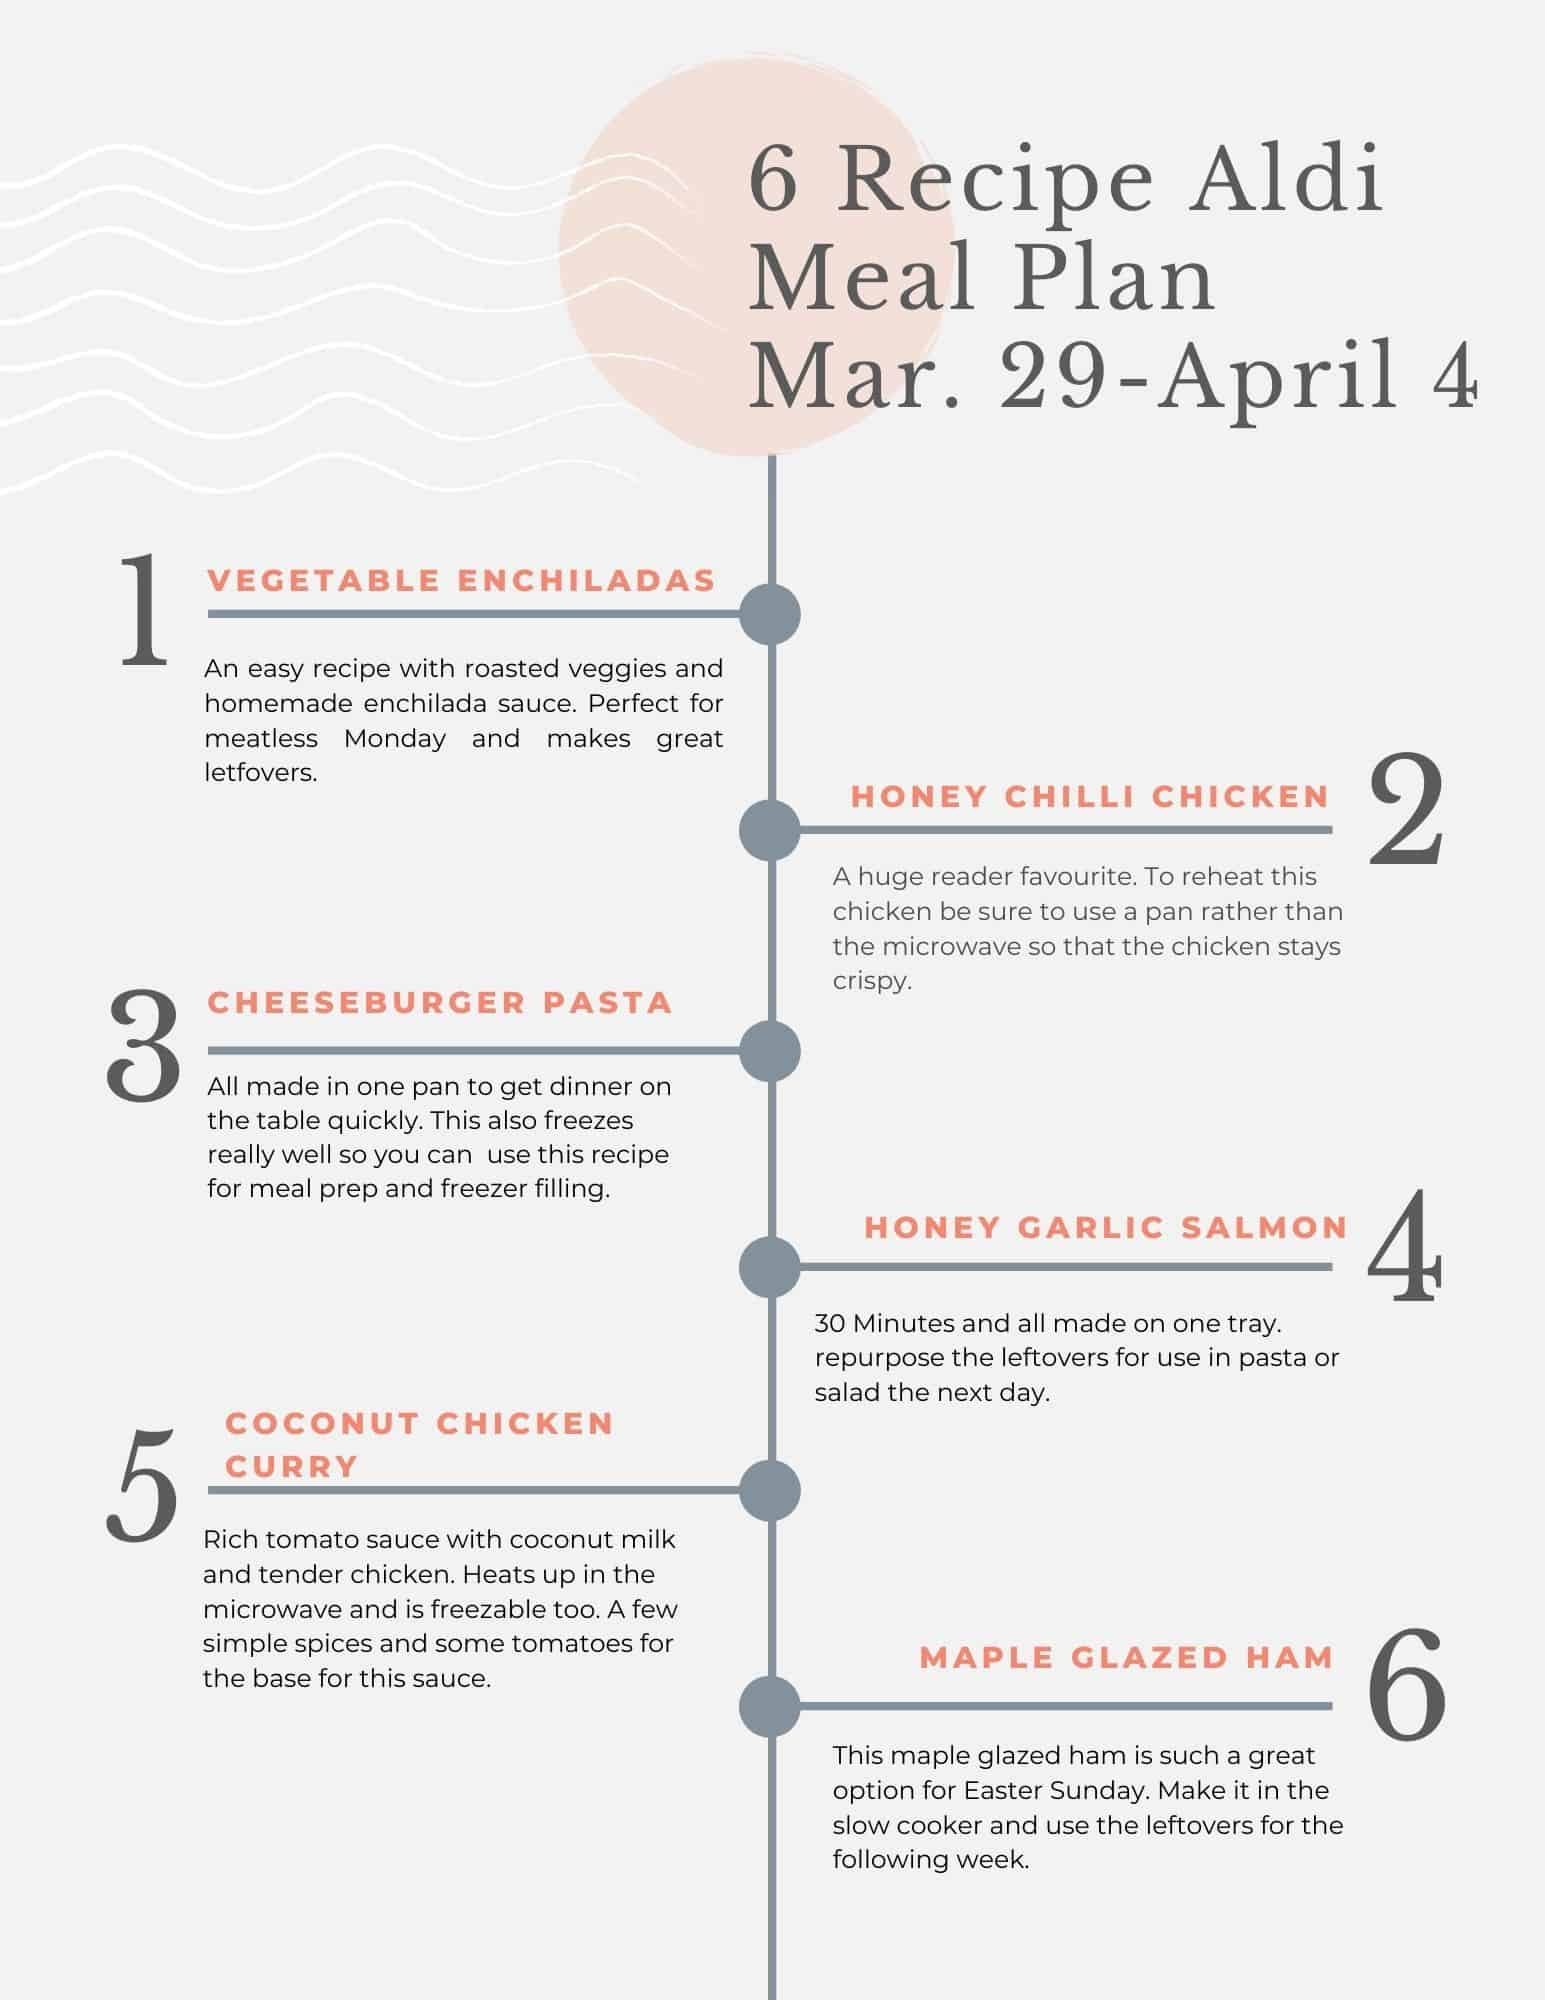 Aldi meal plan for March 29.